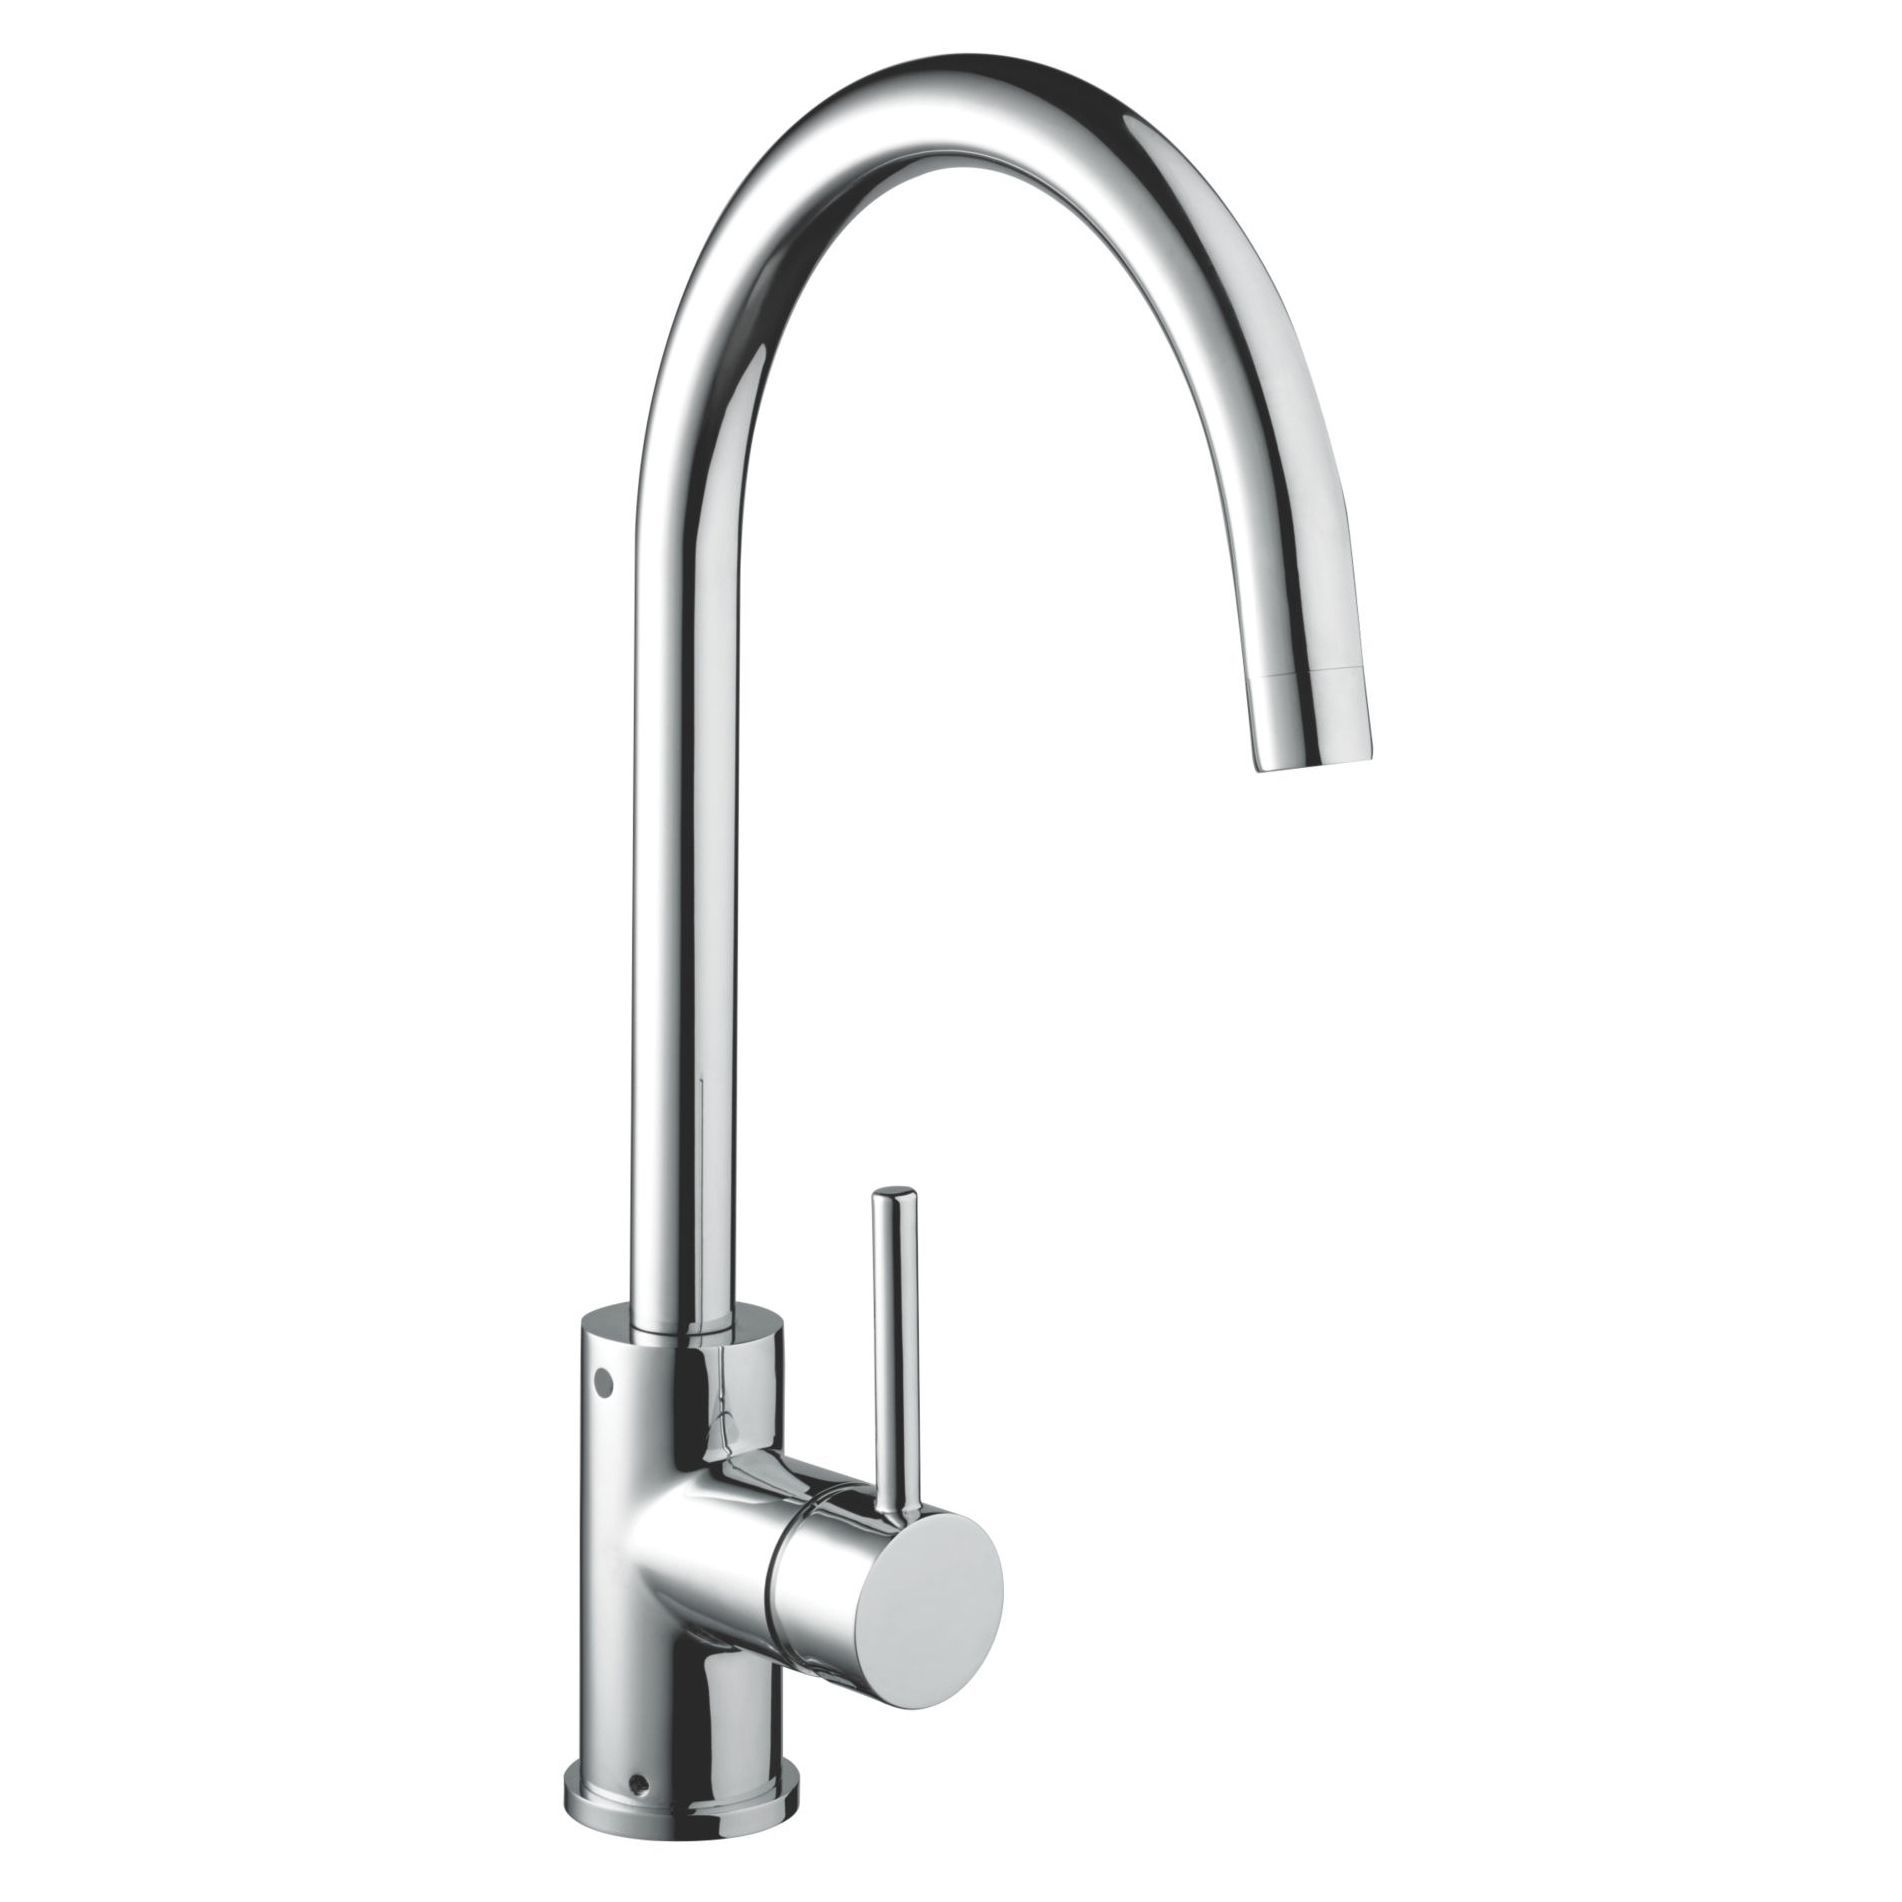 Bristan chrome lever mixer tap departments diy at bq kitchen bristan chrome effect lever mixer tap bq for all your home and garden supplies and advice on all the latest diy trends workwithnaturefo